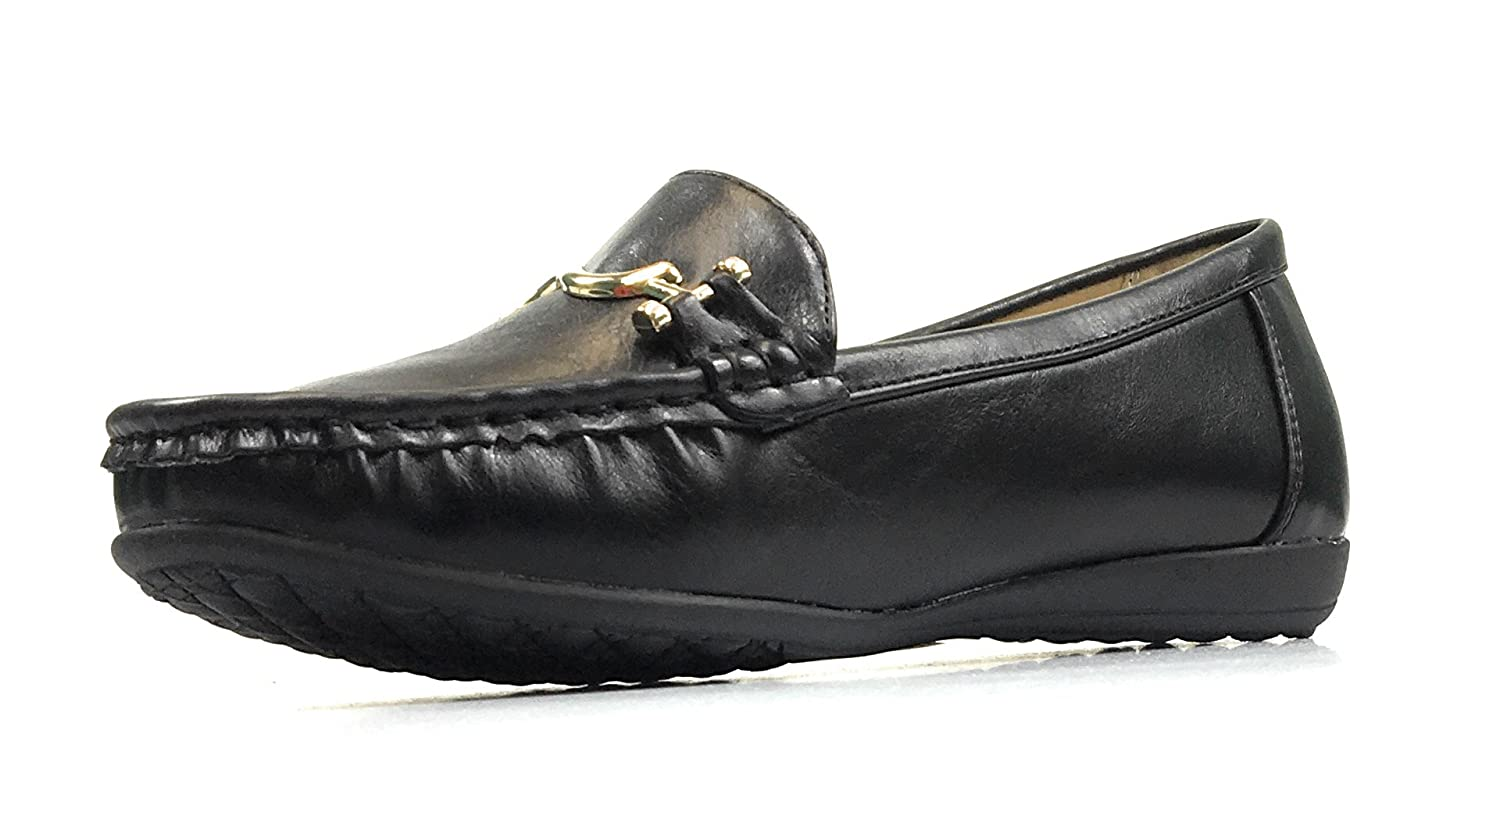 Pierre Dumas Women's Hazel-7 Black Leather Loafers Comfort Shoes (7.5, Black/Karl1)